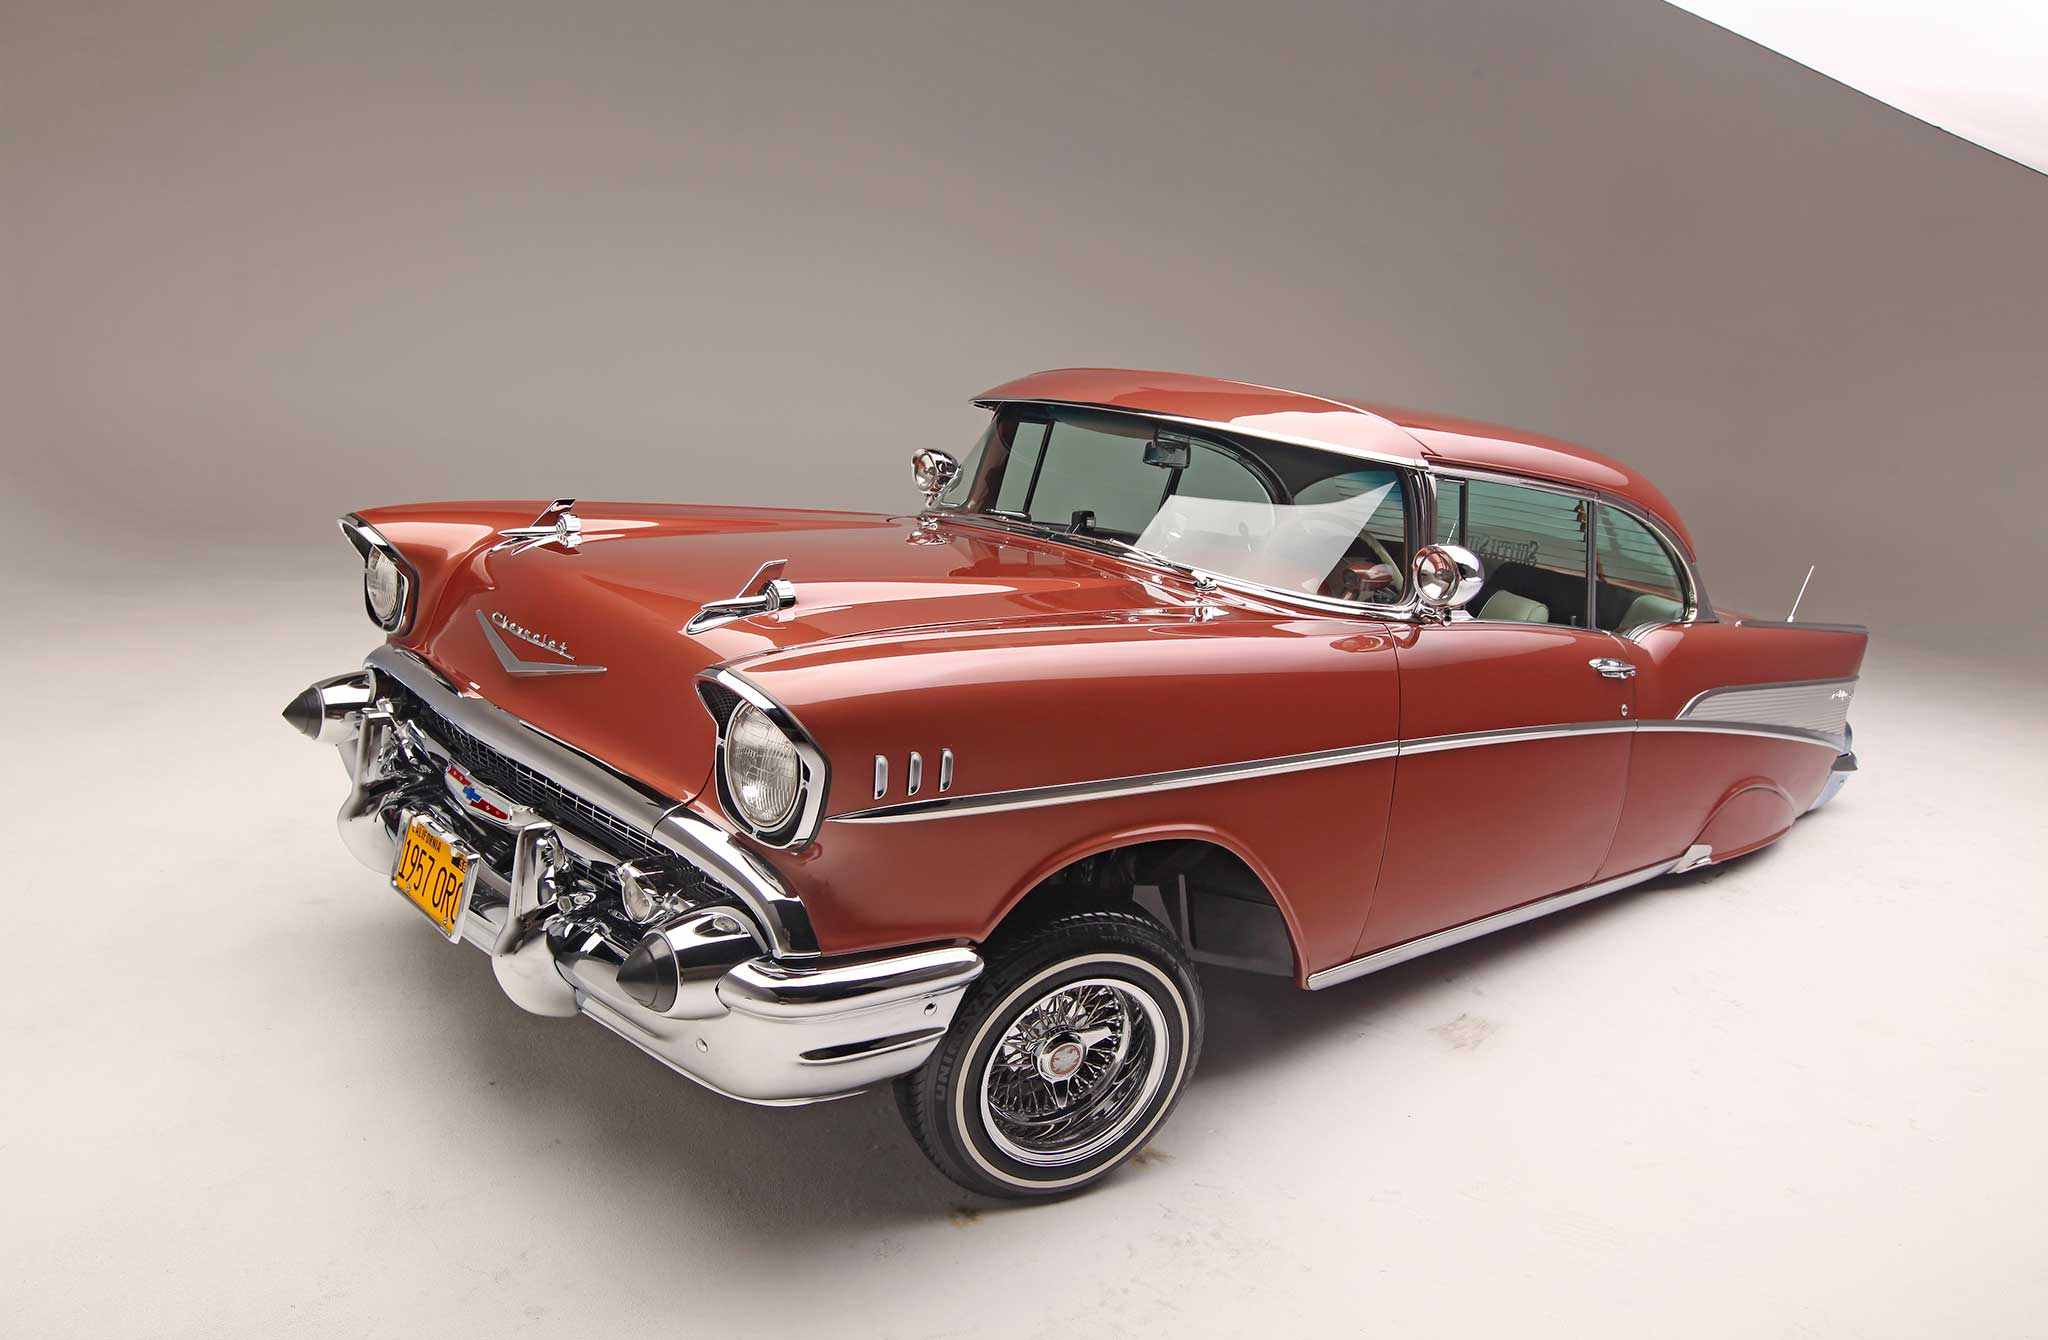 1957 Chevrolet Bel Air The Fresh King Of Chevy Impala Lowrider 17 24